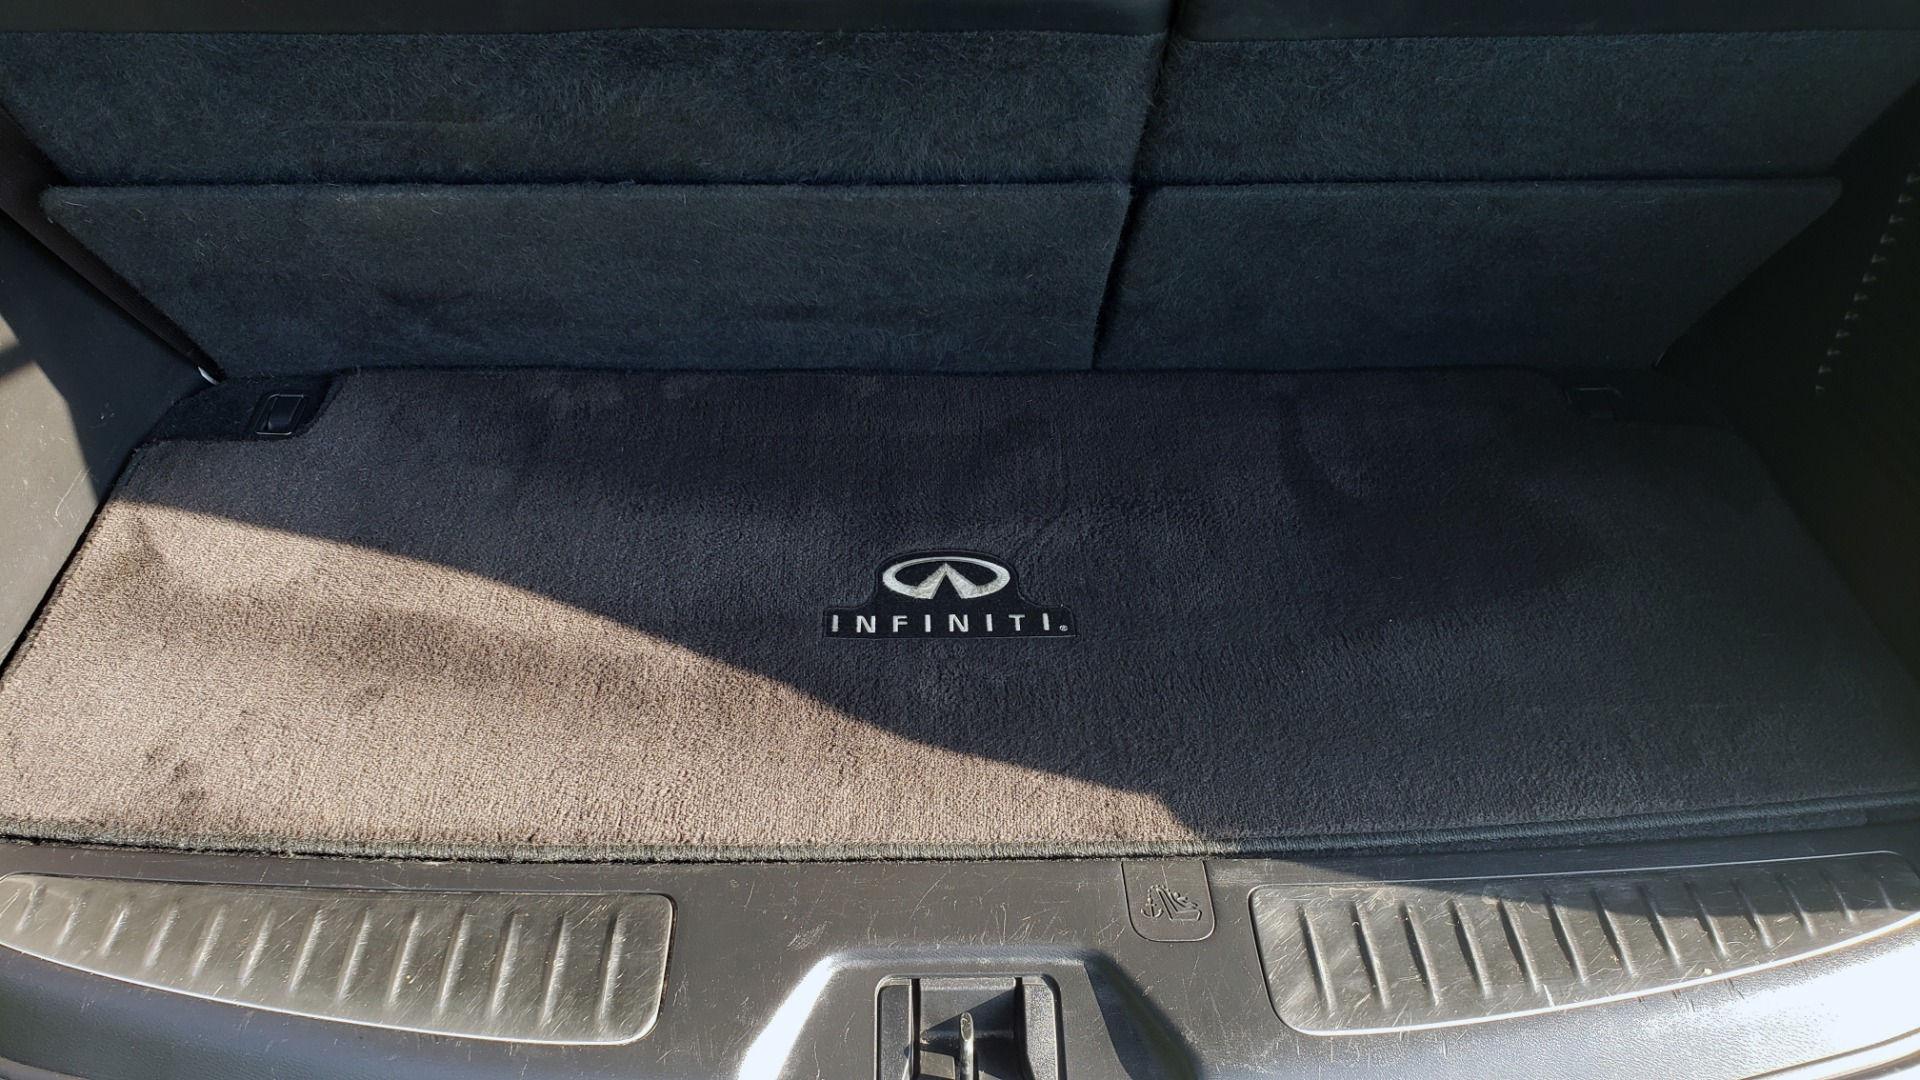 Used 2013 INFINITI QX56 THEATER PKG / NAV / SUNROOF / HEATED SEATS / REARVIEW for sale Sold at Formula Imports in Charlotte NC 28227 20